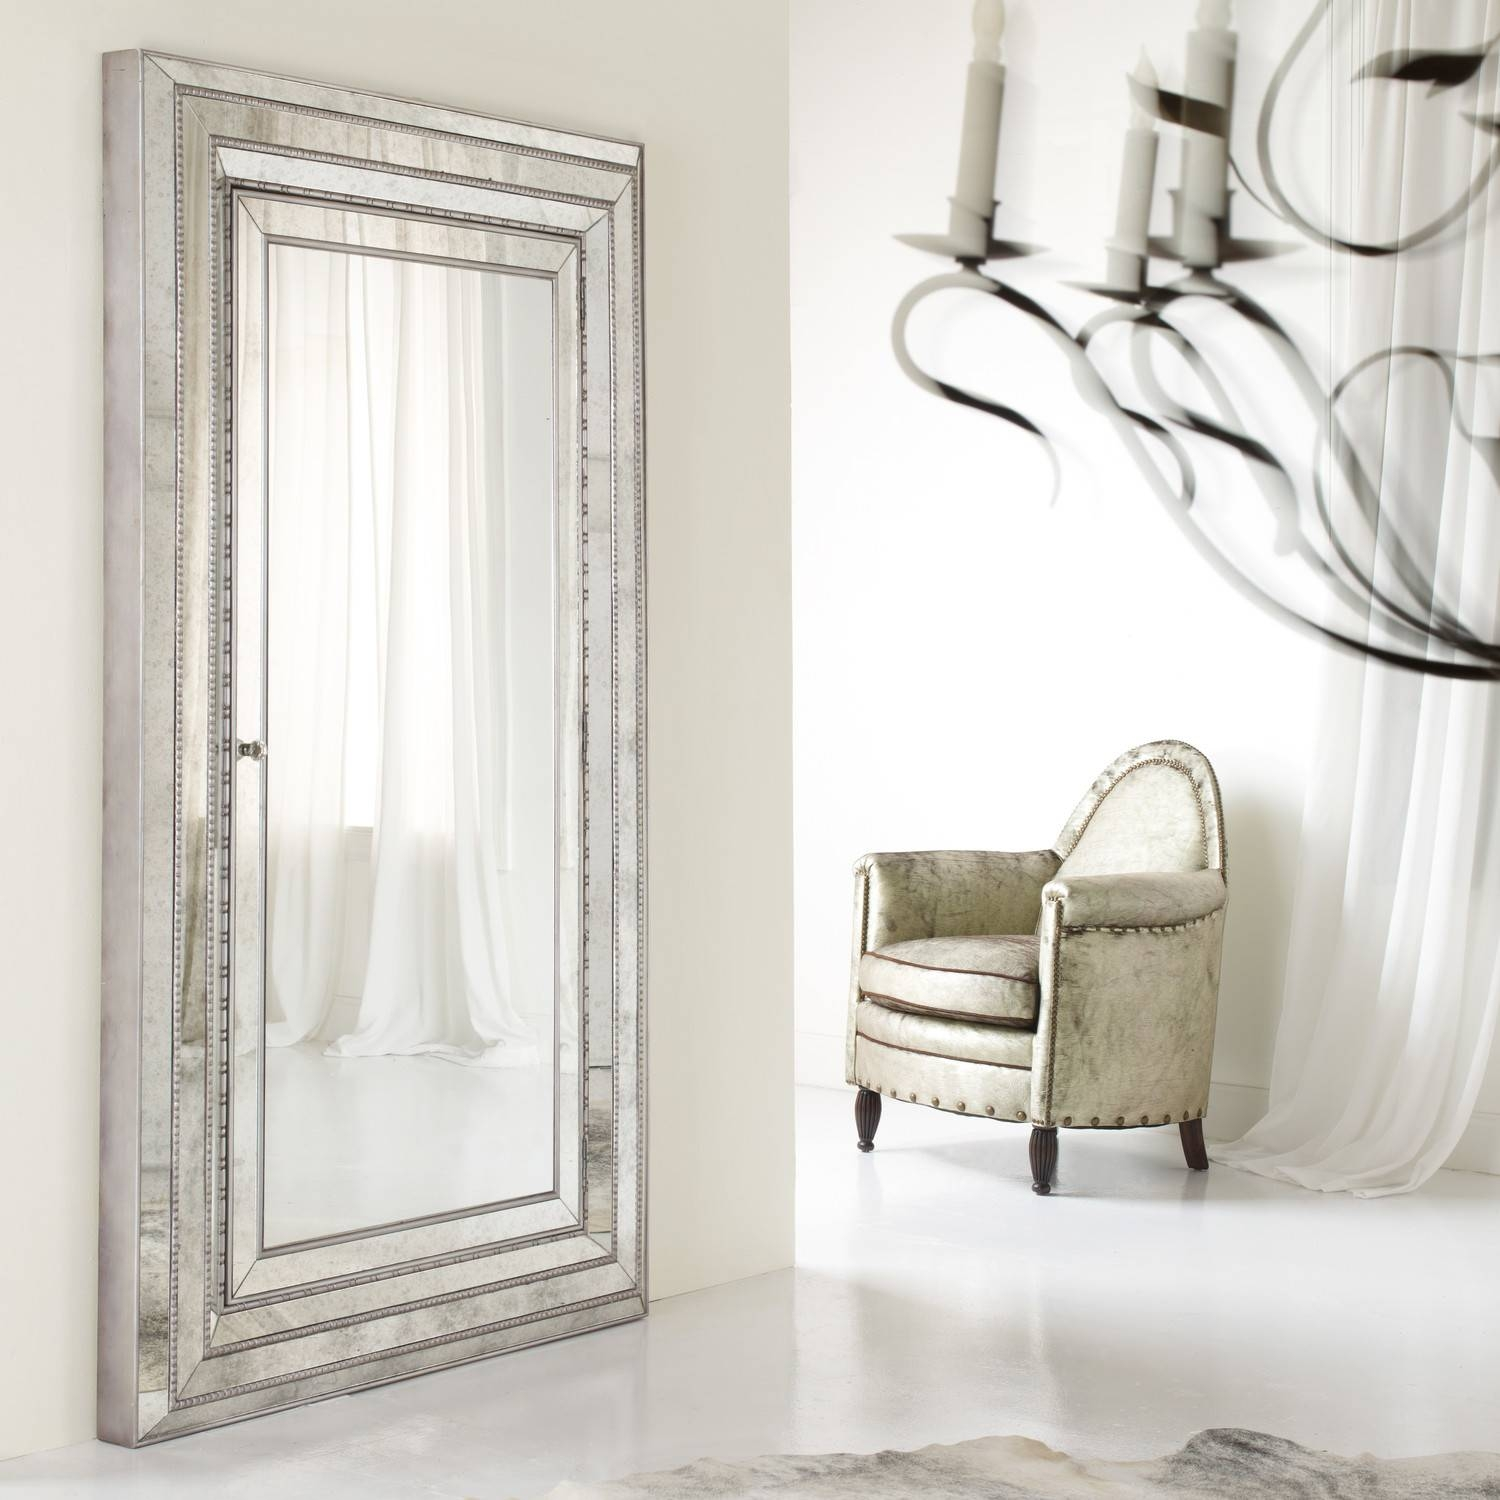 Furniture: Mesmerizing Oversized Floor Mirror For Home Furniture with Decorative Full Length Mirrors (Image 16 of 25)